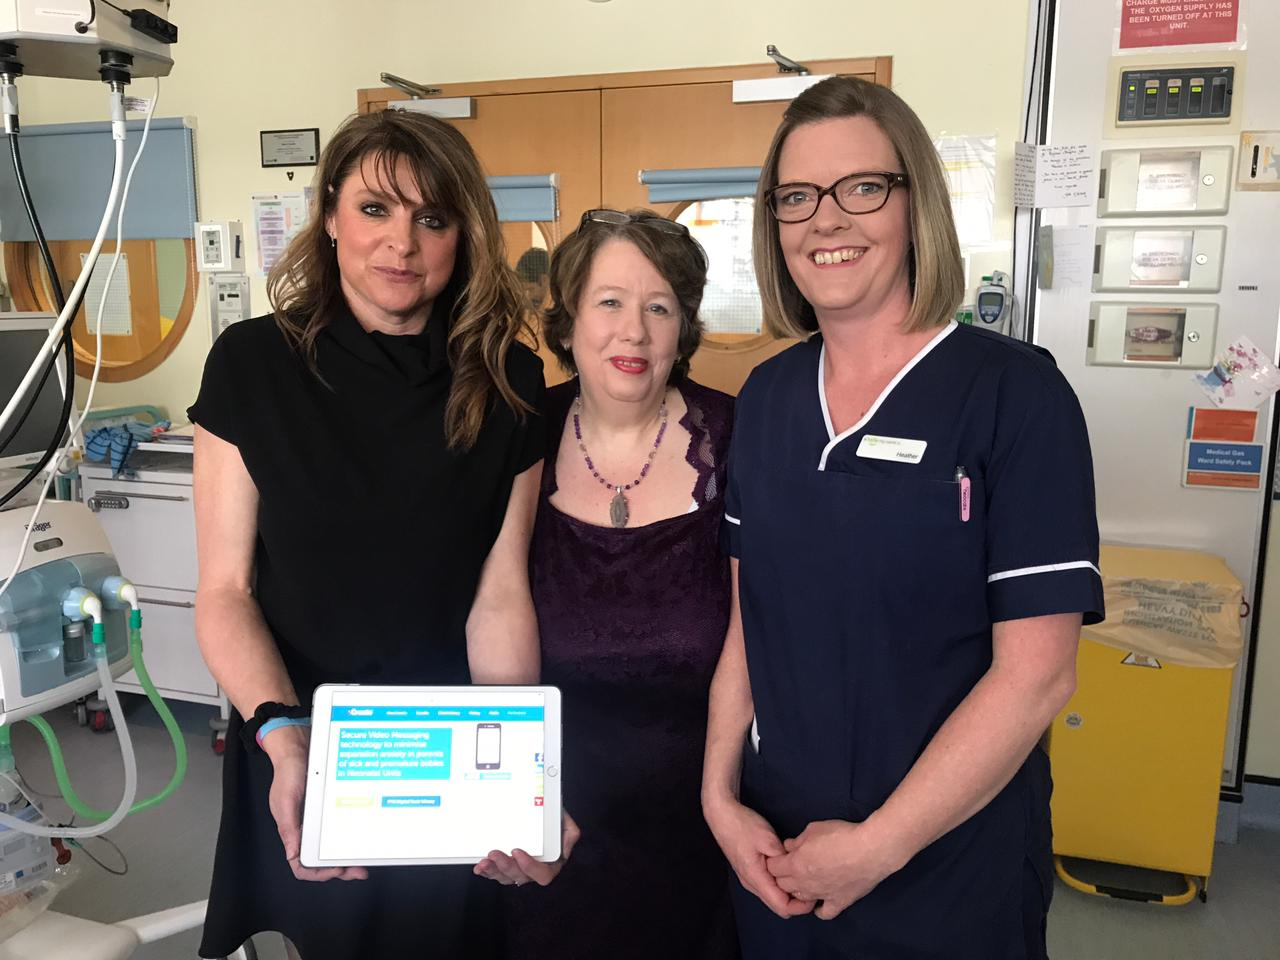 The PPBF fund innovative video technology to support parents of premature babies